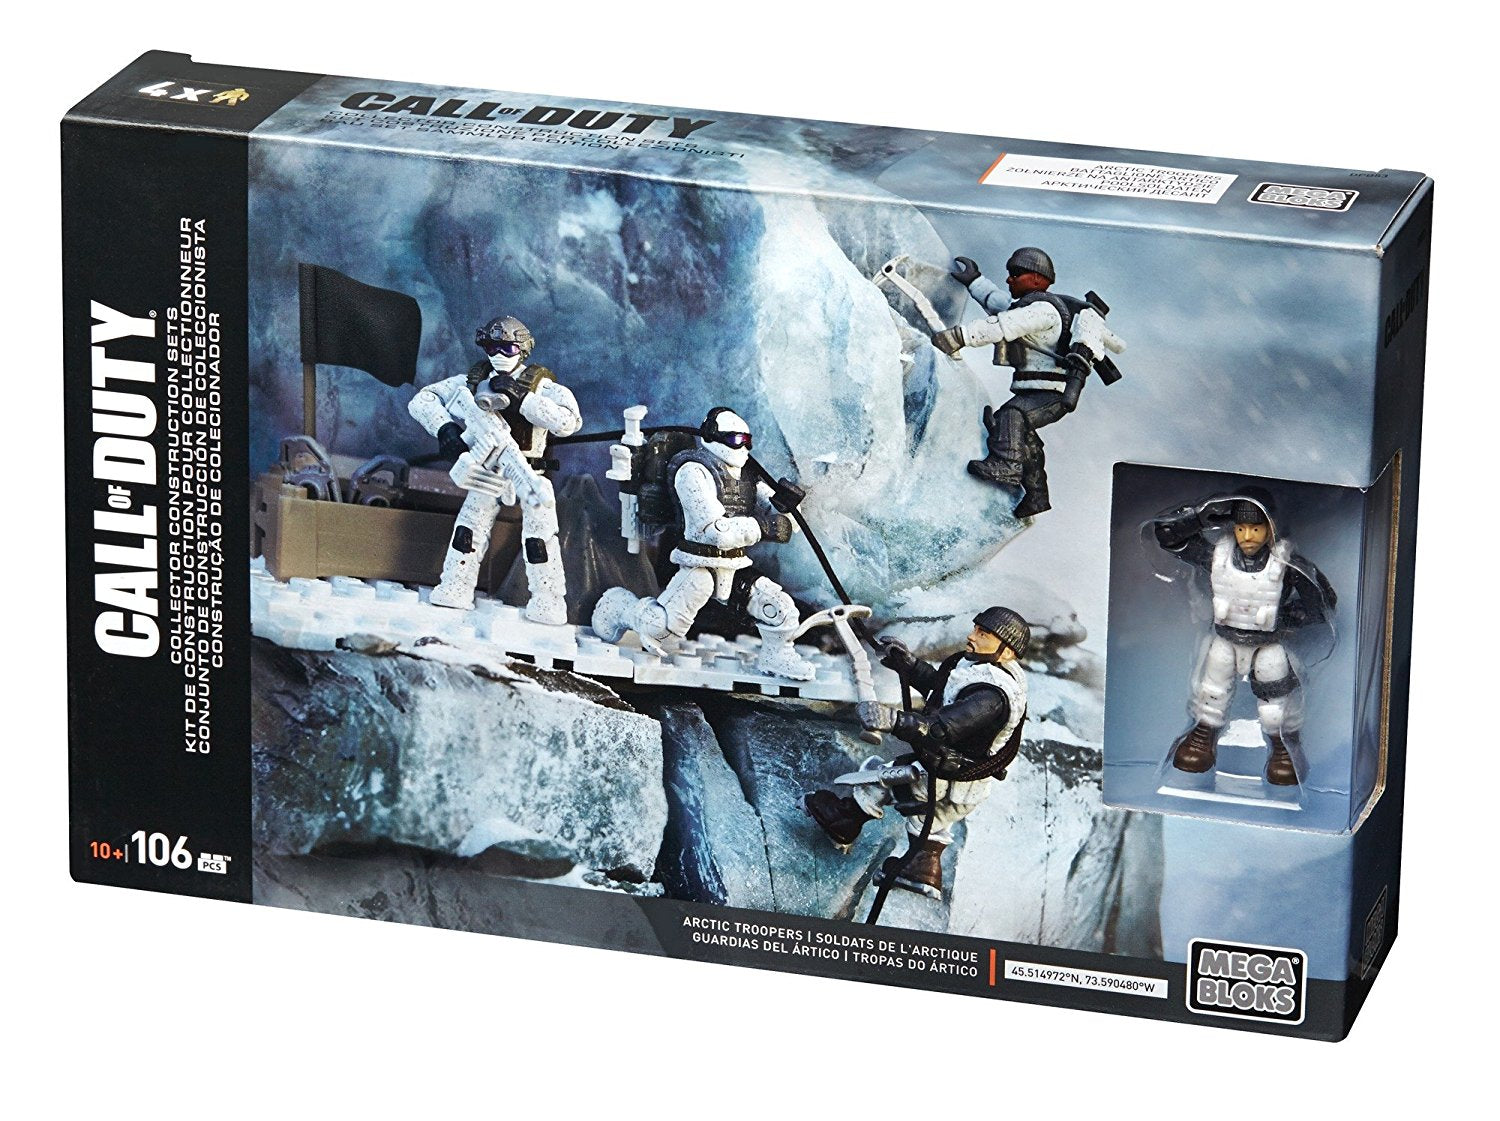 Mattel Mega Construx Call of Duty Arctic Troopers DPB53